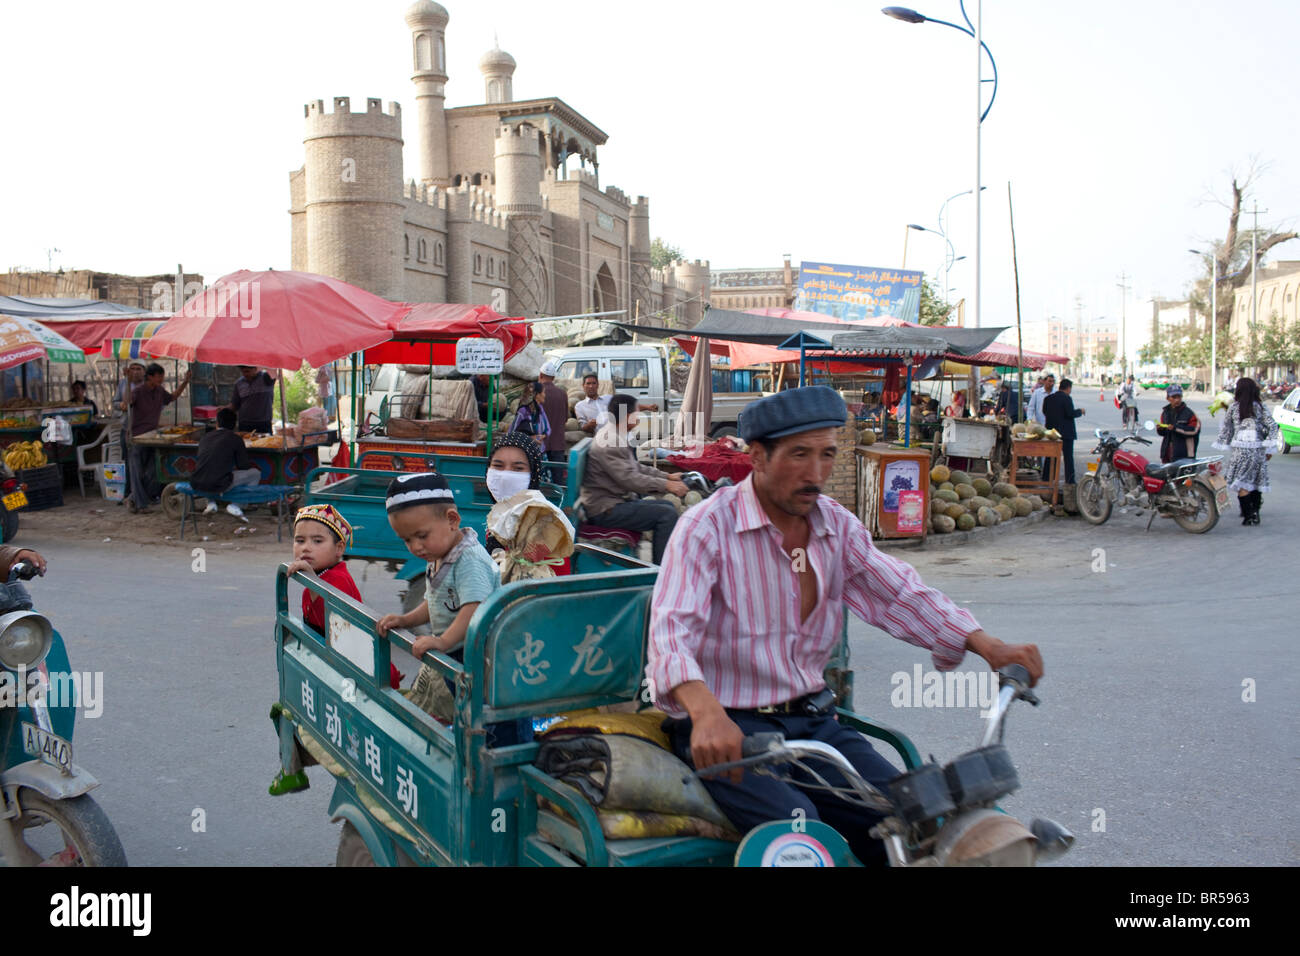 Yarkand High Resolution Stock Photography and Images - Alamy